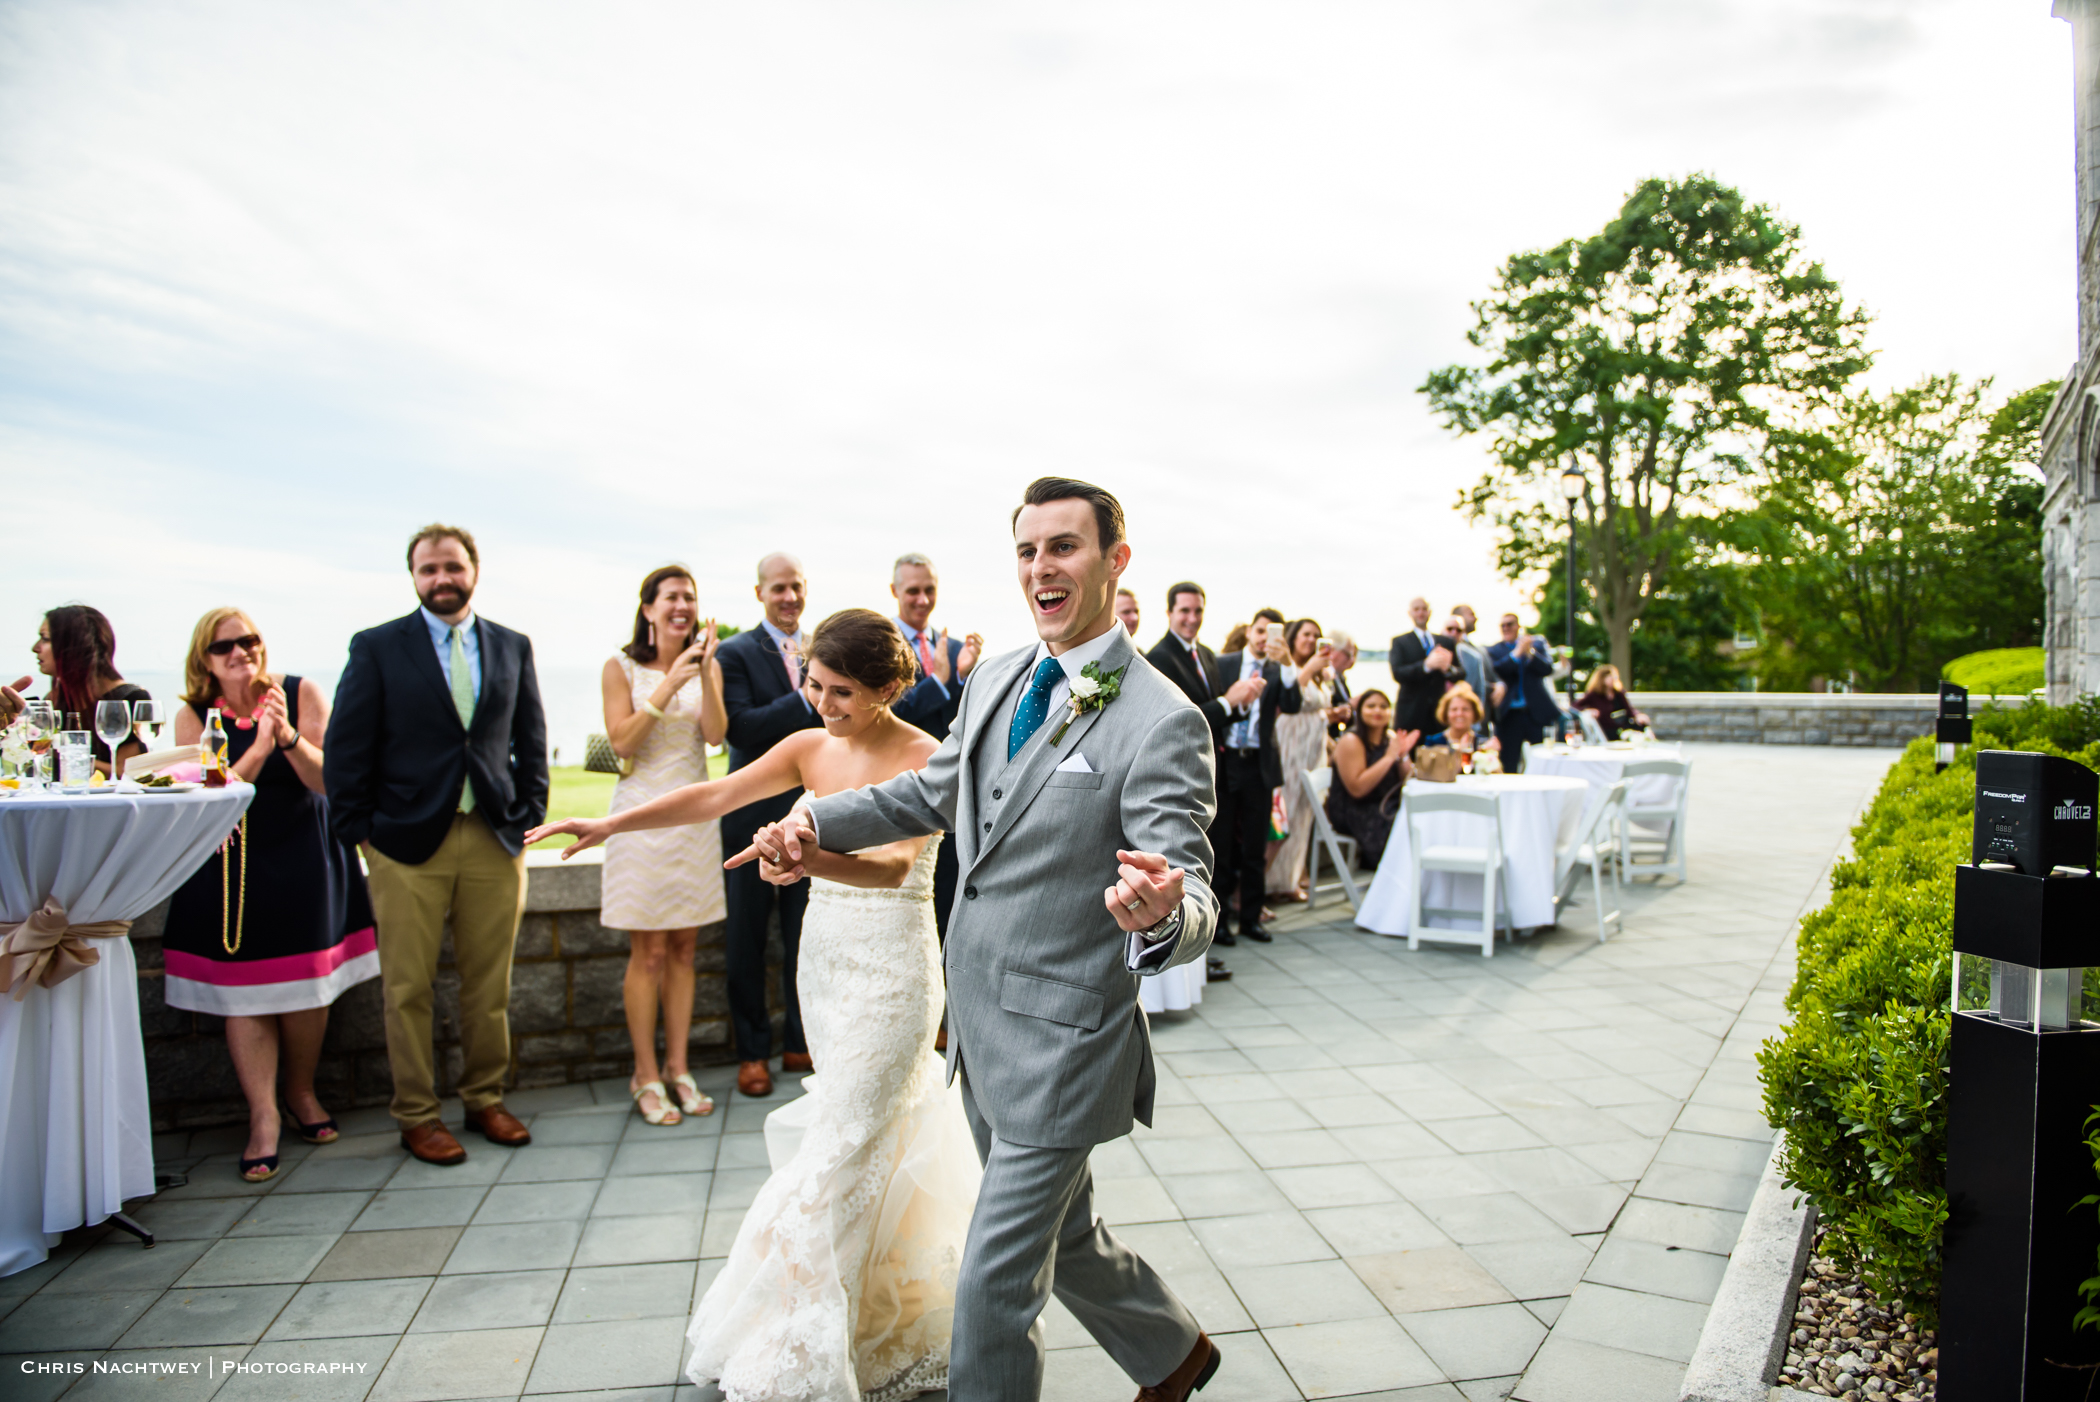 wedding-branford-house-groton-connecticut-photos-chris-nachtwey-amanda-todd-2018-18.jpg